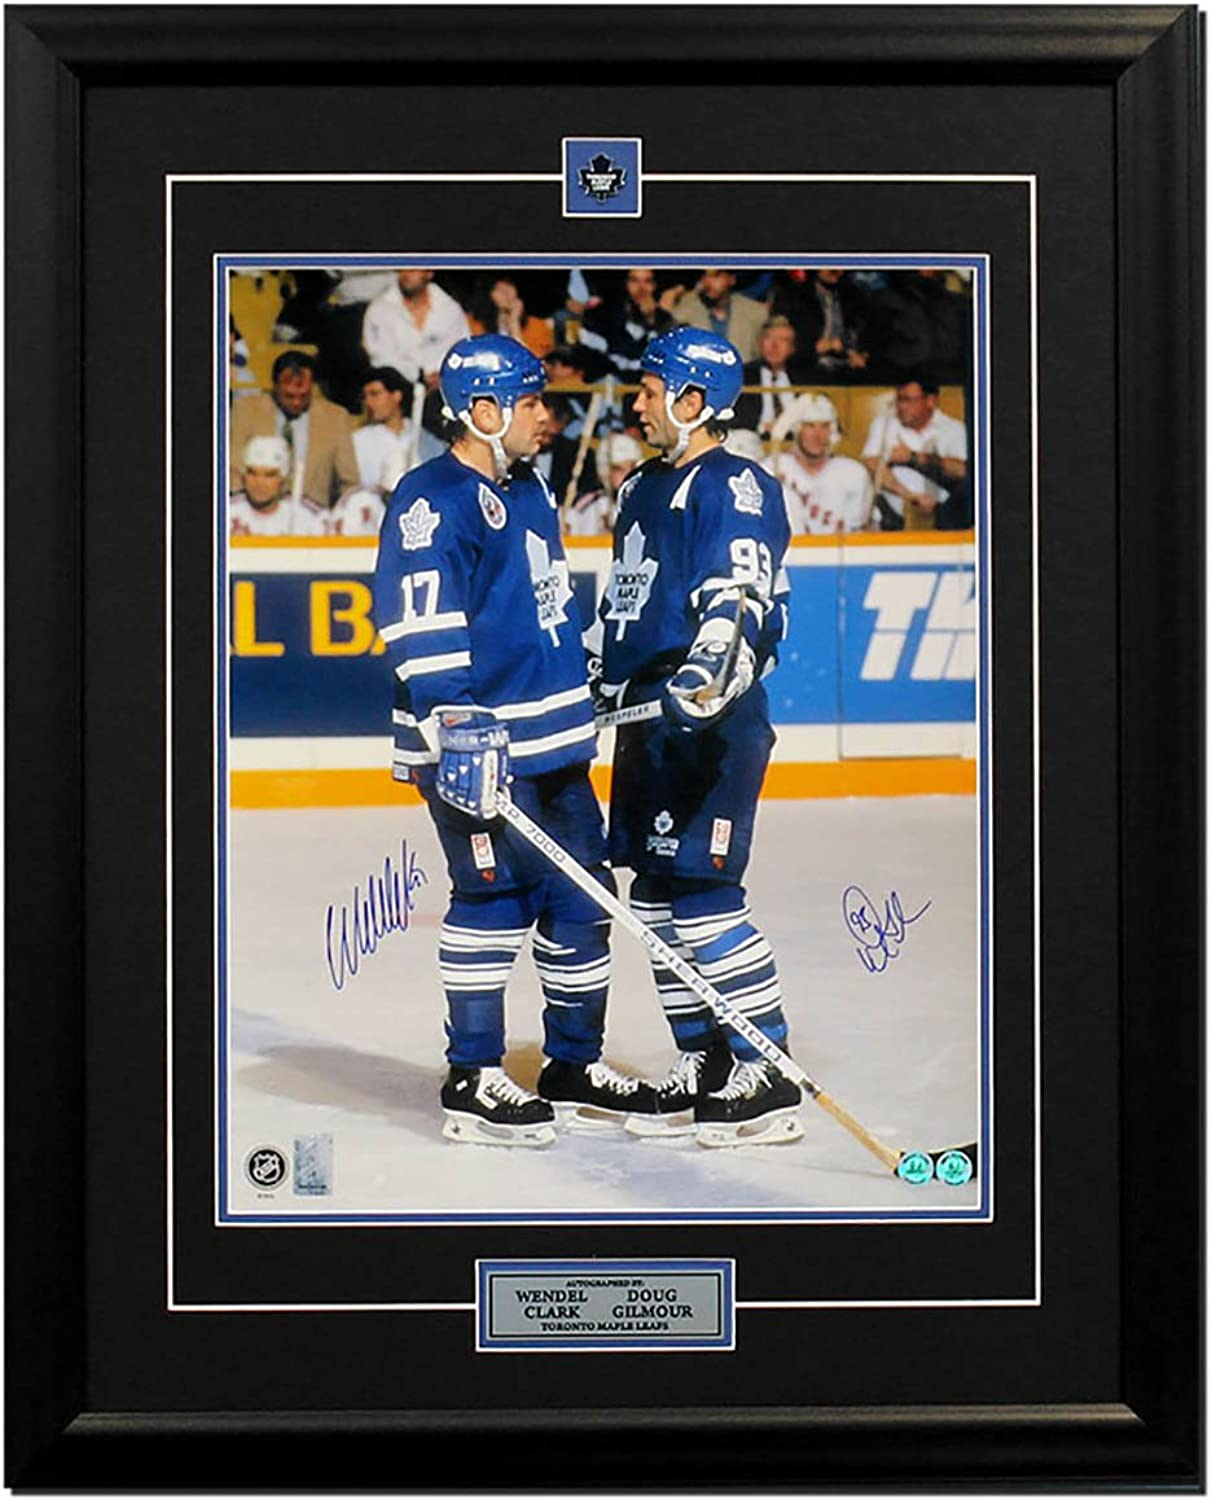 Doug Gilmour & Wendel Clark Tgoldnto Maple Leaf Dual Signed On Ice 25x31 Frame